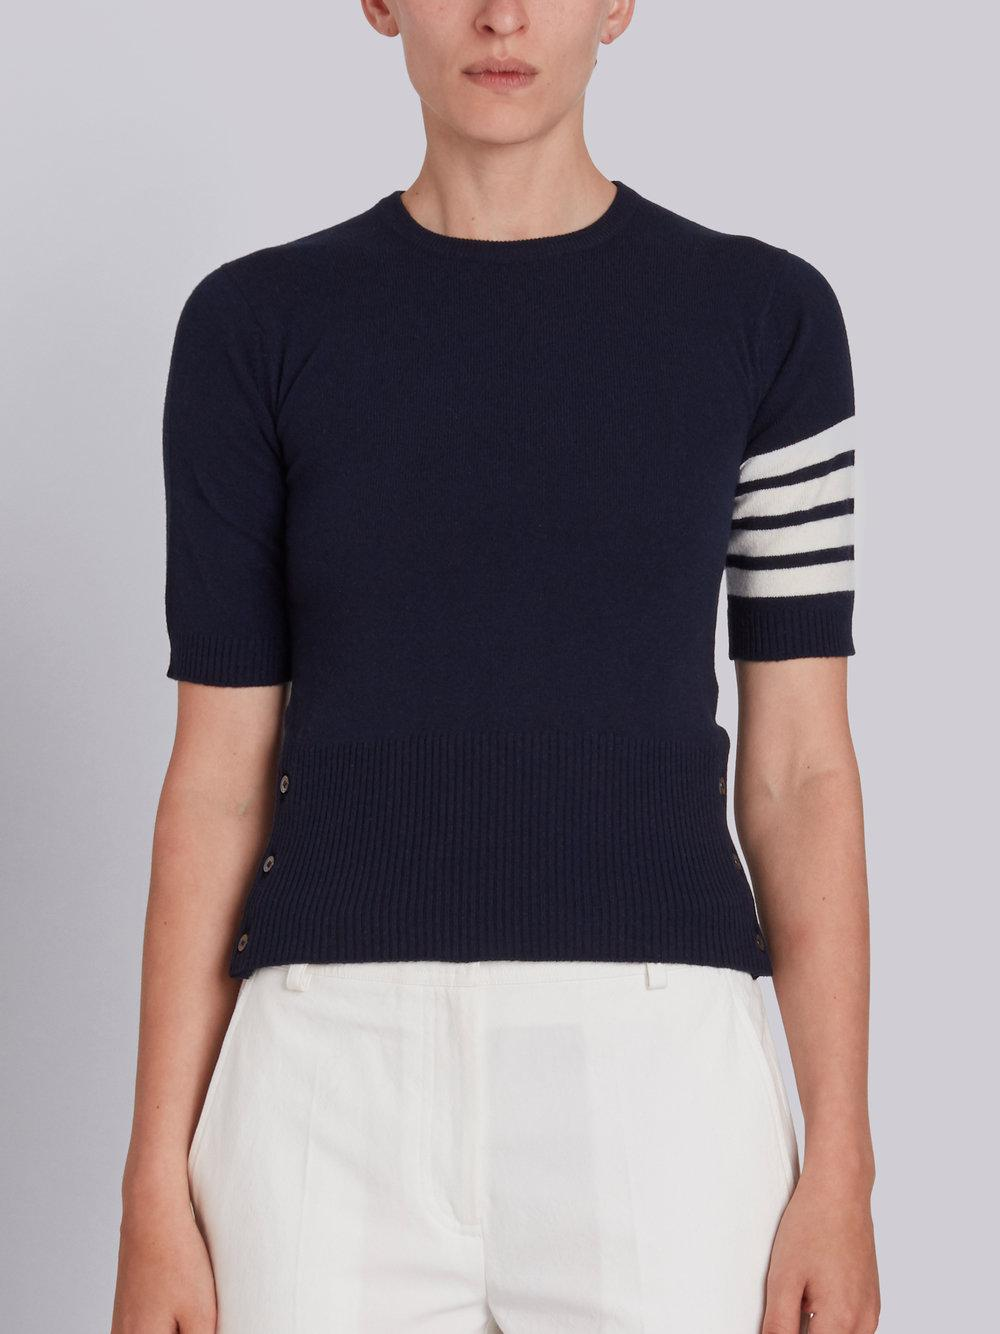 Short Crewneck Pullover With 4-Bar Stripe In Navy Blue Cashmere Thom Browne Free Shipping Top Quality Outlet Amazing Price Clearance Footaction Manchester Sale Online i9Rf8irytI